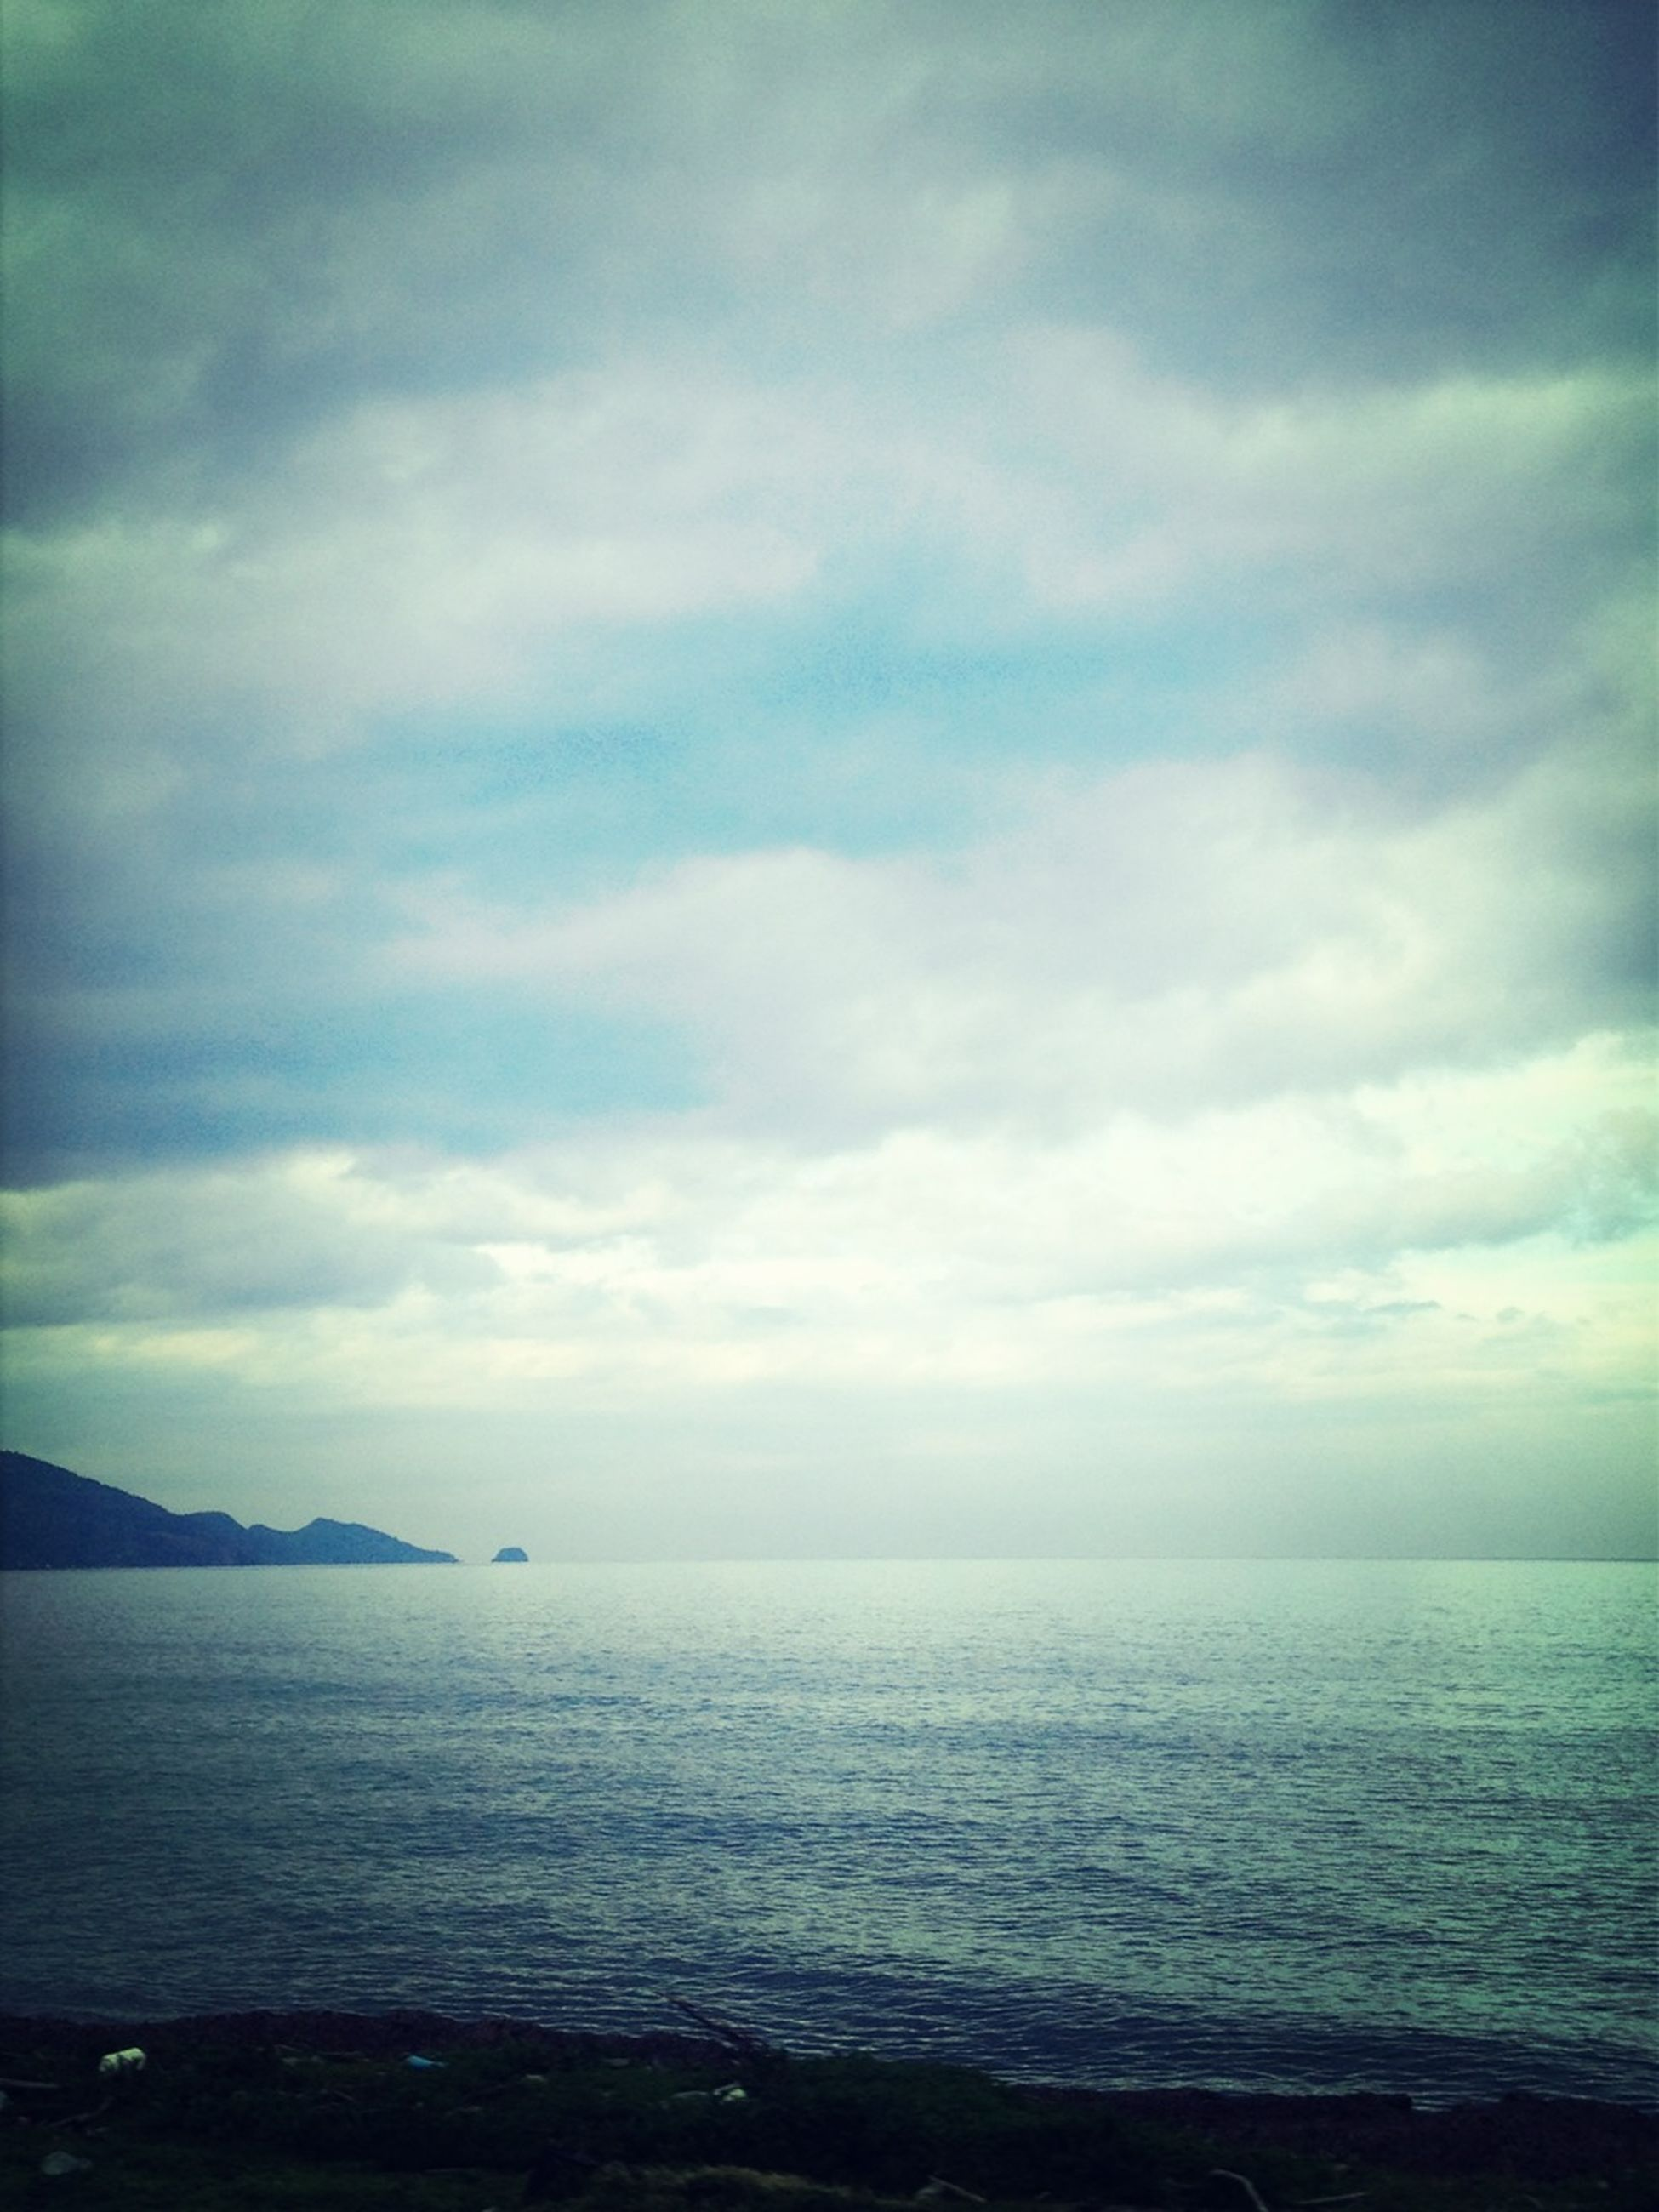 sea, horizon over water, sky, water, scenics, tranquil scene, tranquility, beauty in nature, cloud - sky, cloudy, nature, cloud, idyllic, waterfront, weather, overcast, beach, seascape, outdoors, dusk